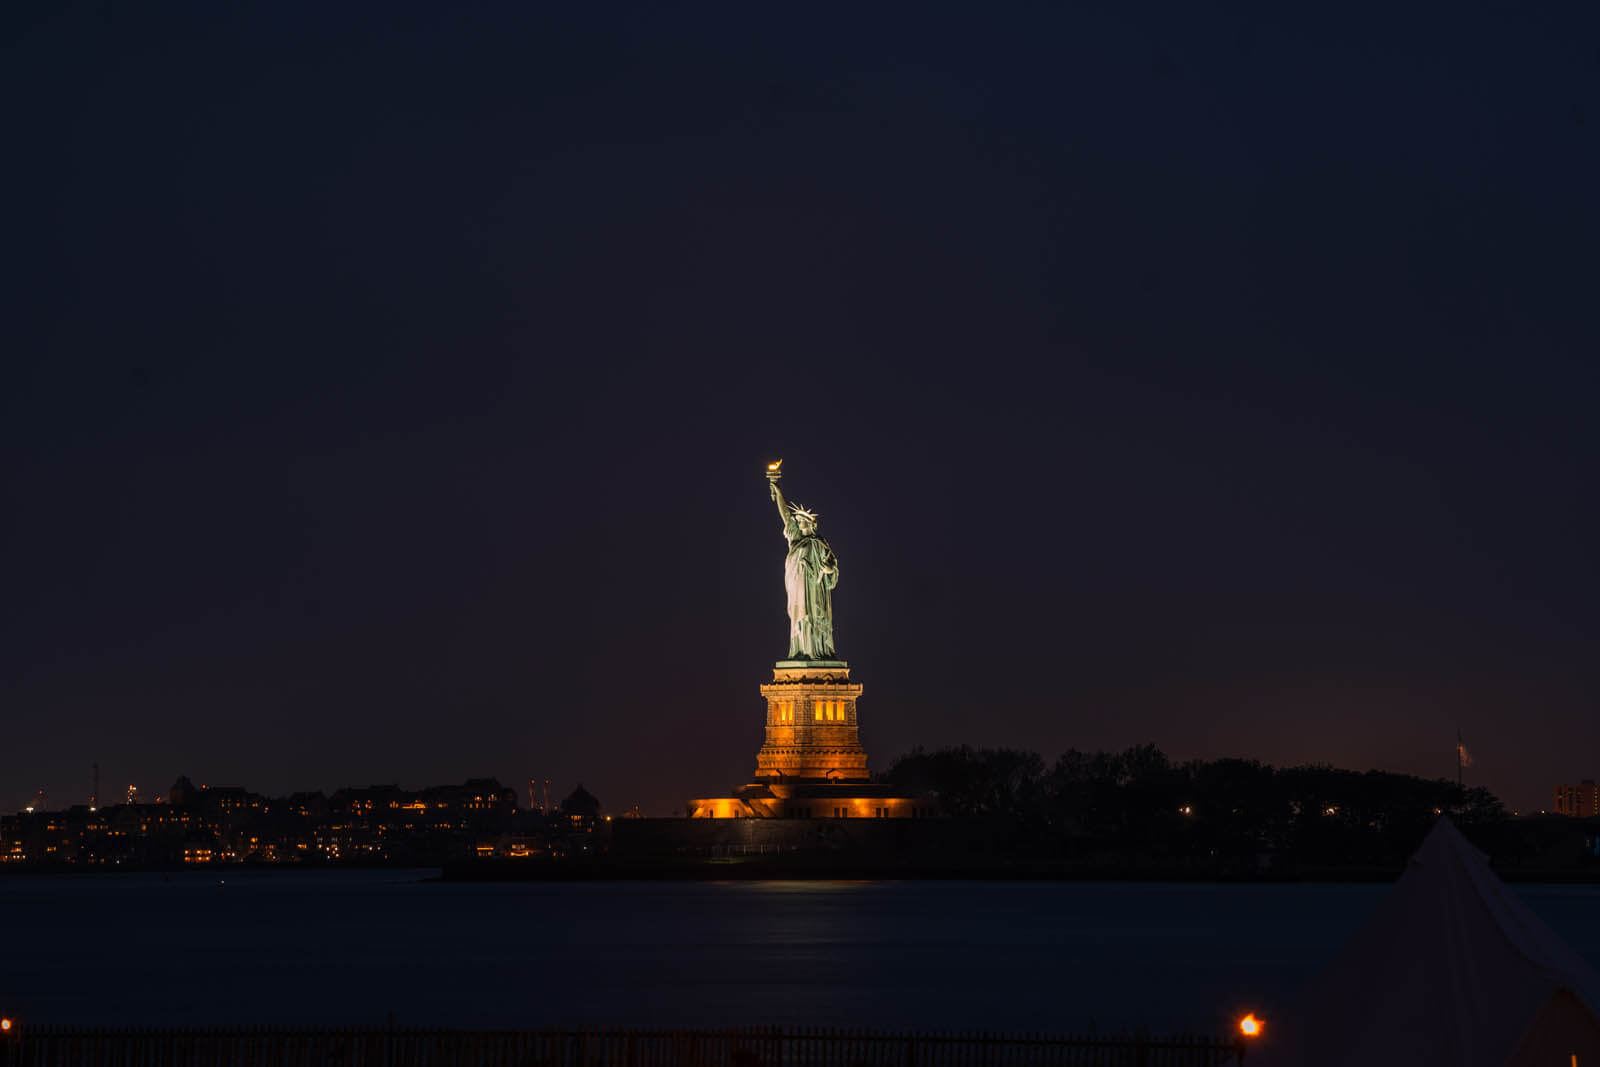 Statue of Liberty at night view from Governors Island